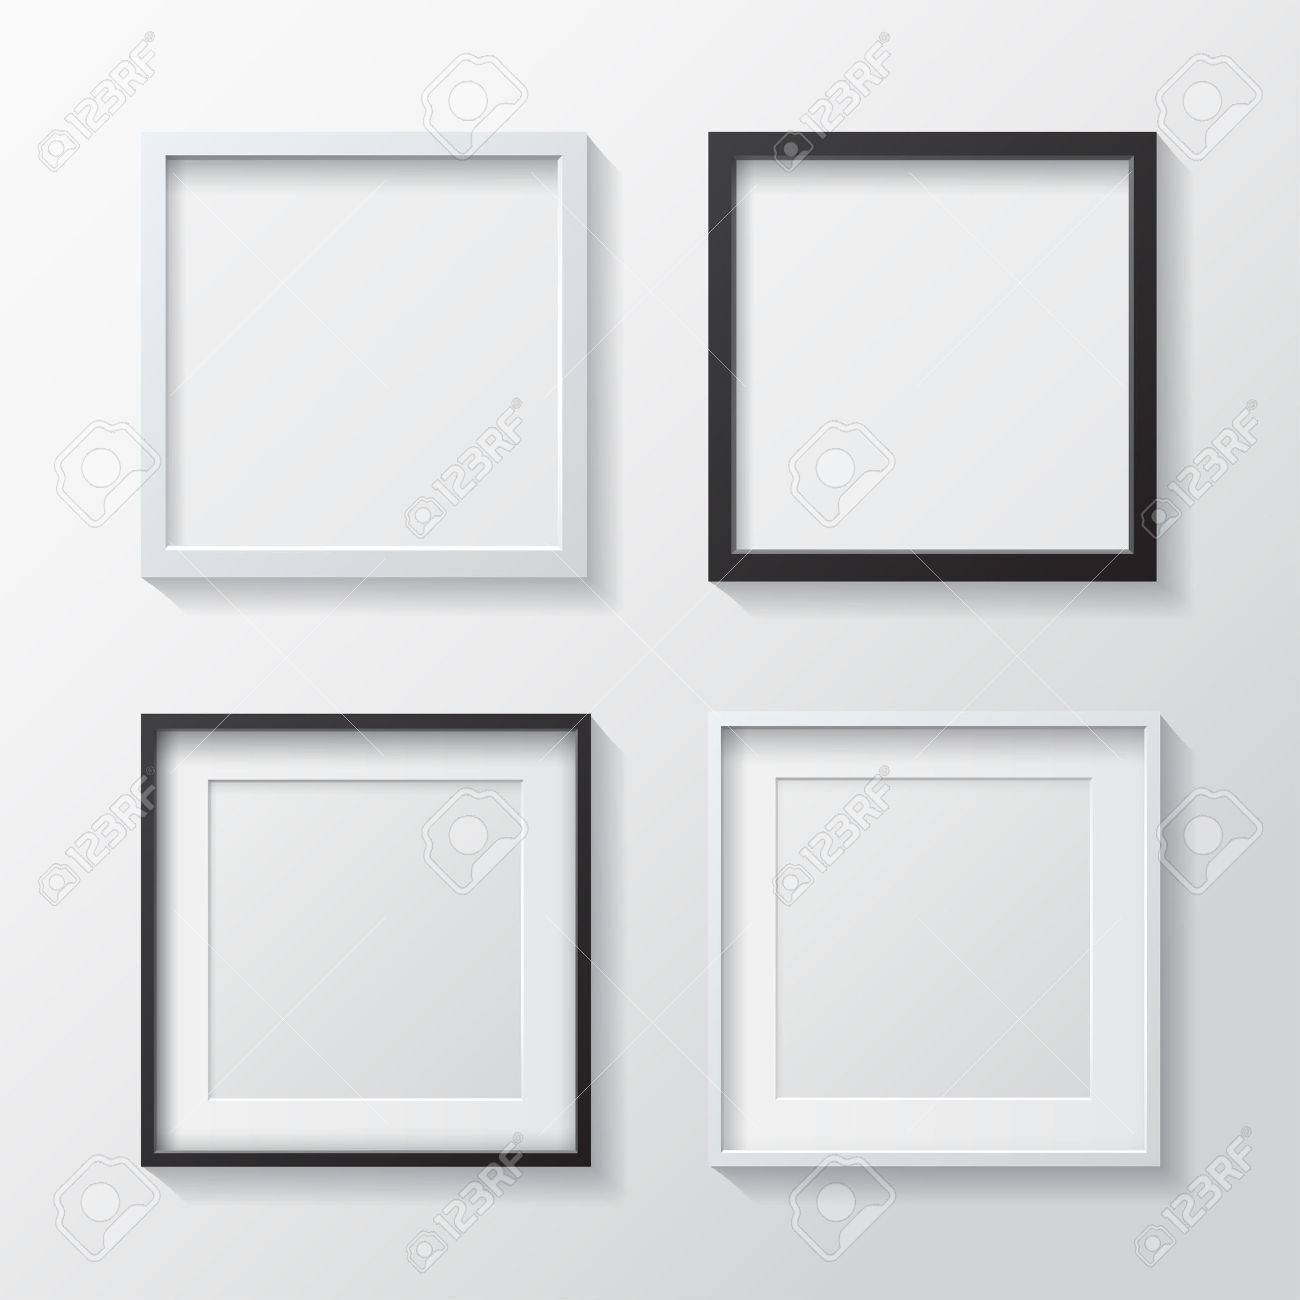 Set Of White Blank Picture Frames And Black Blank Picture Frames ...